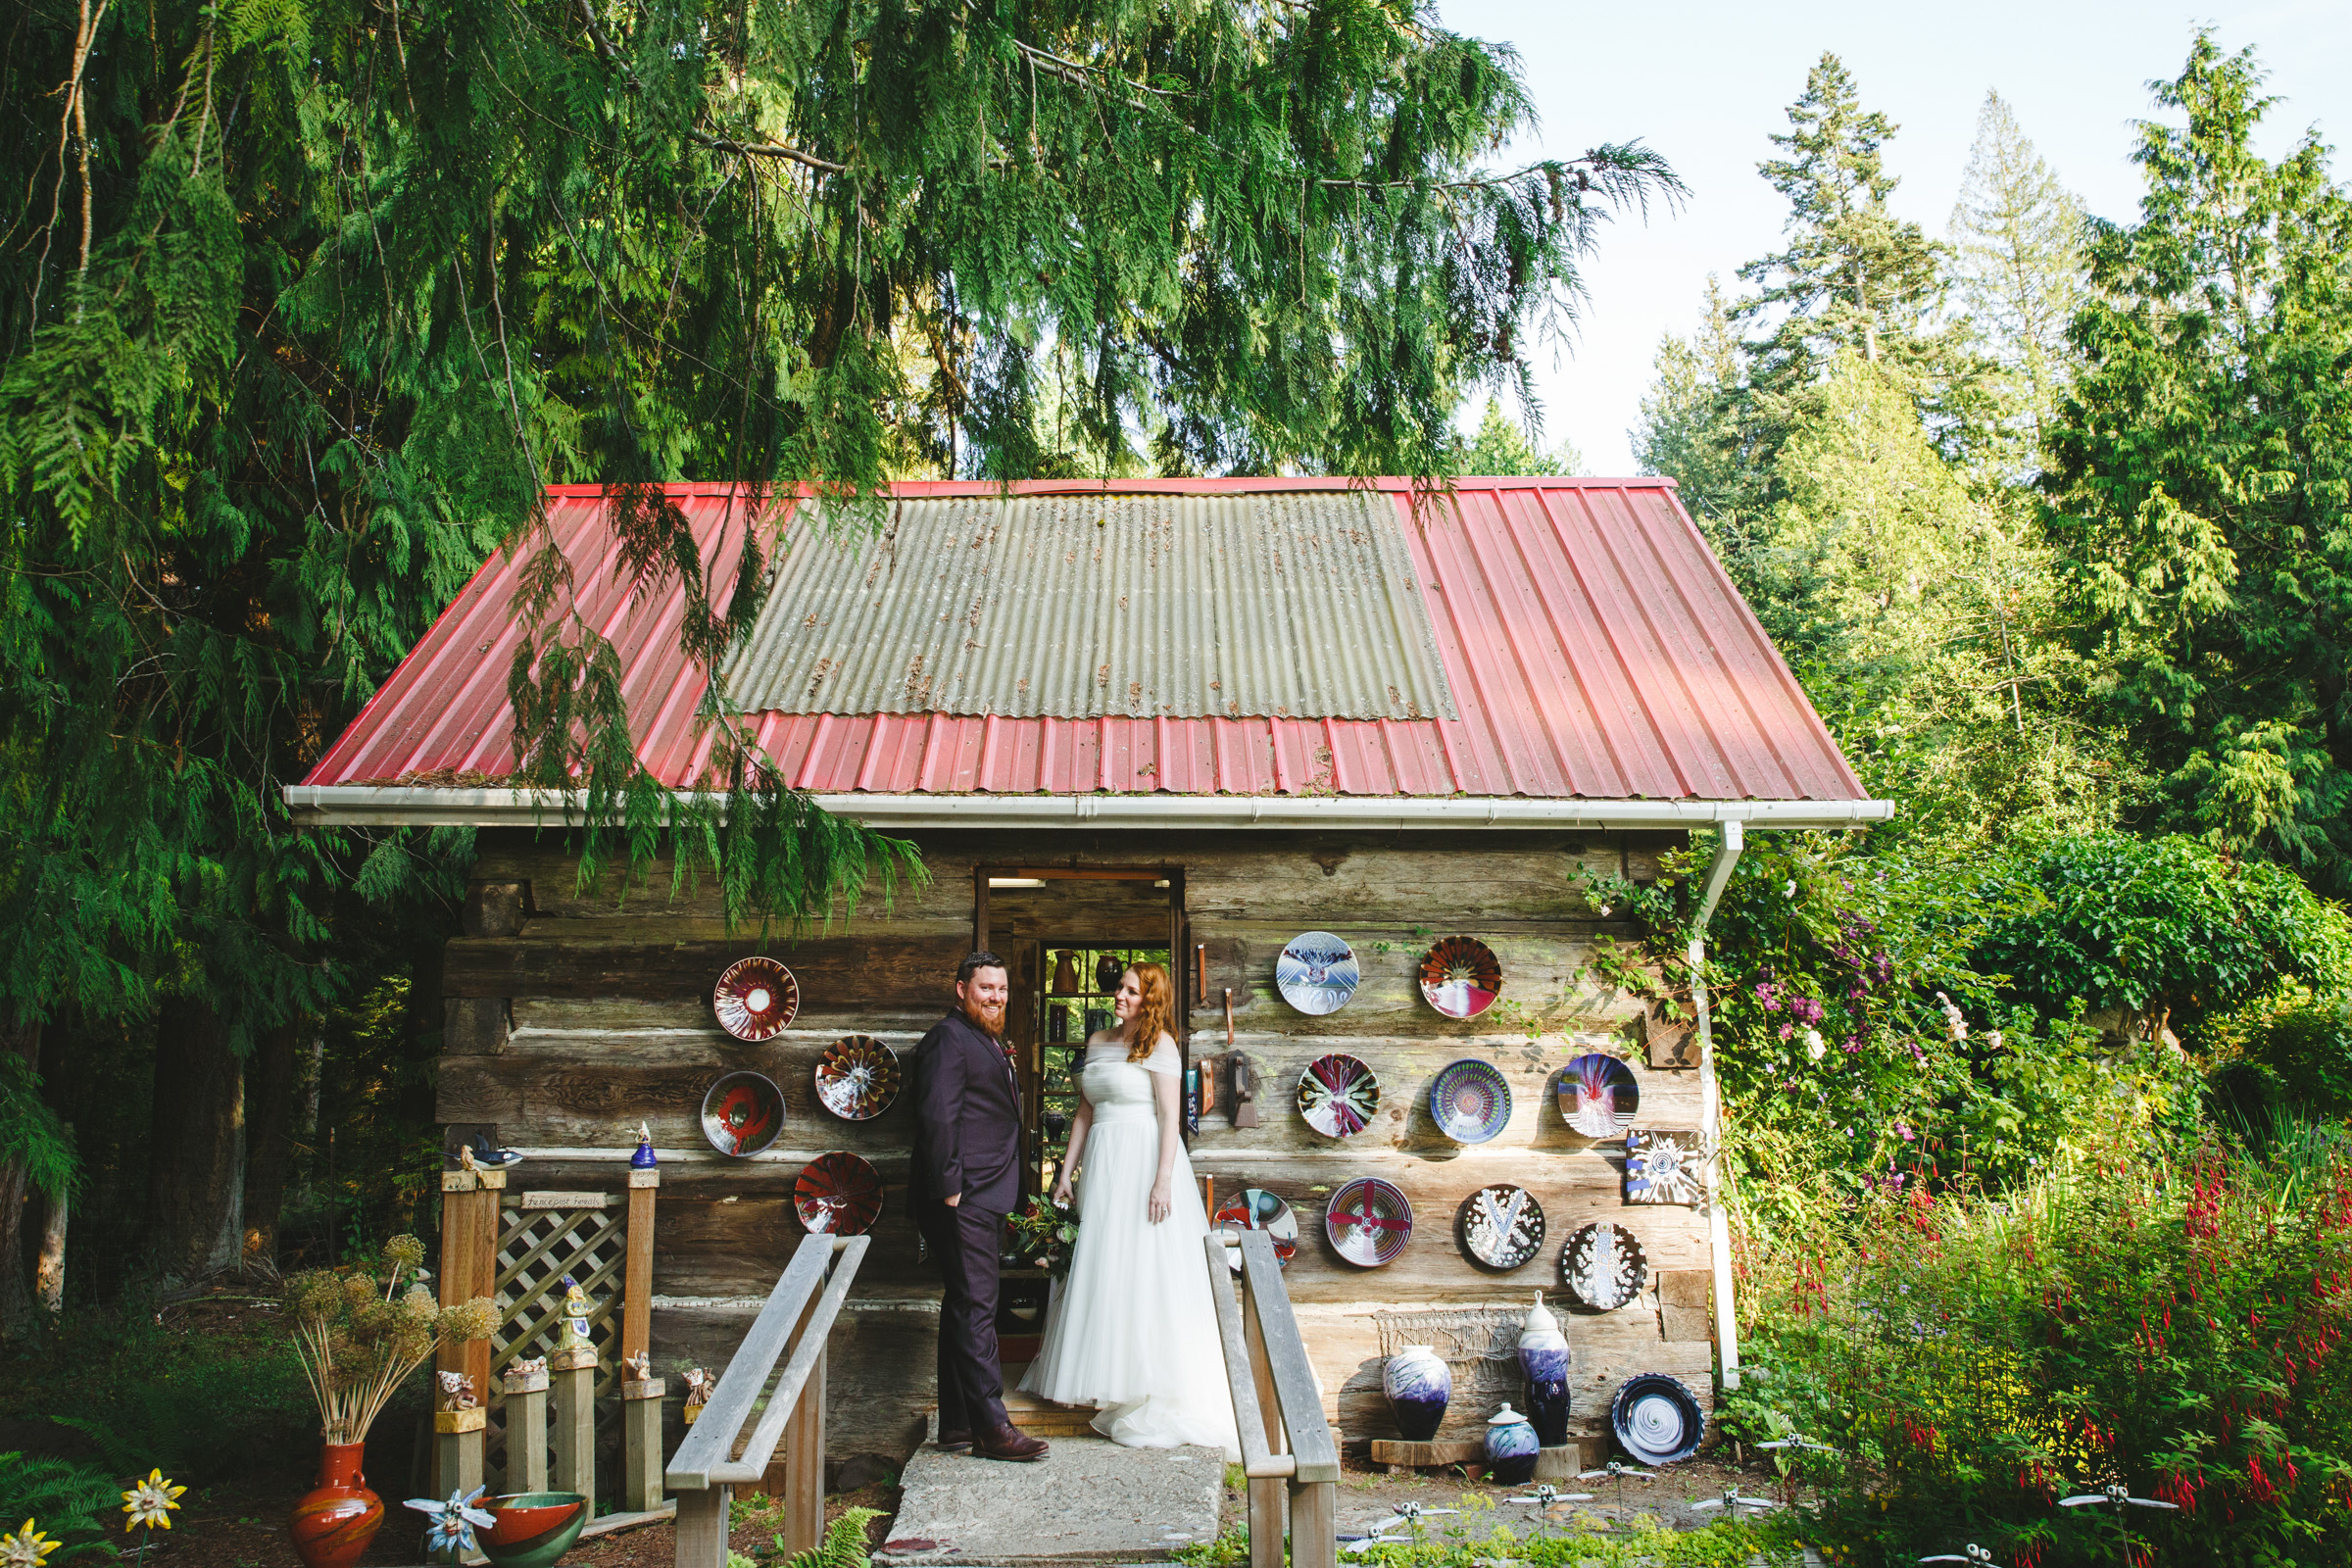 Couple outside rustic log cabin - photo by Satya Curcio Photography